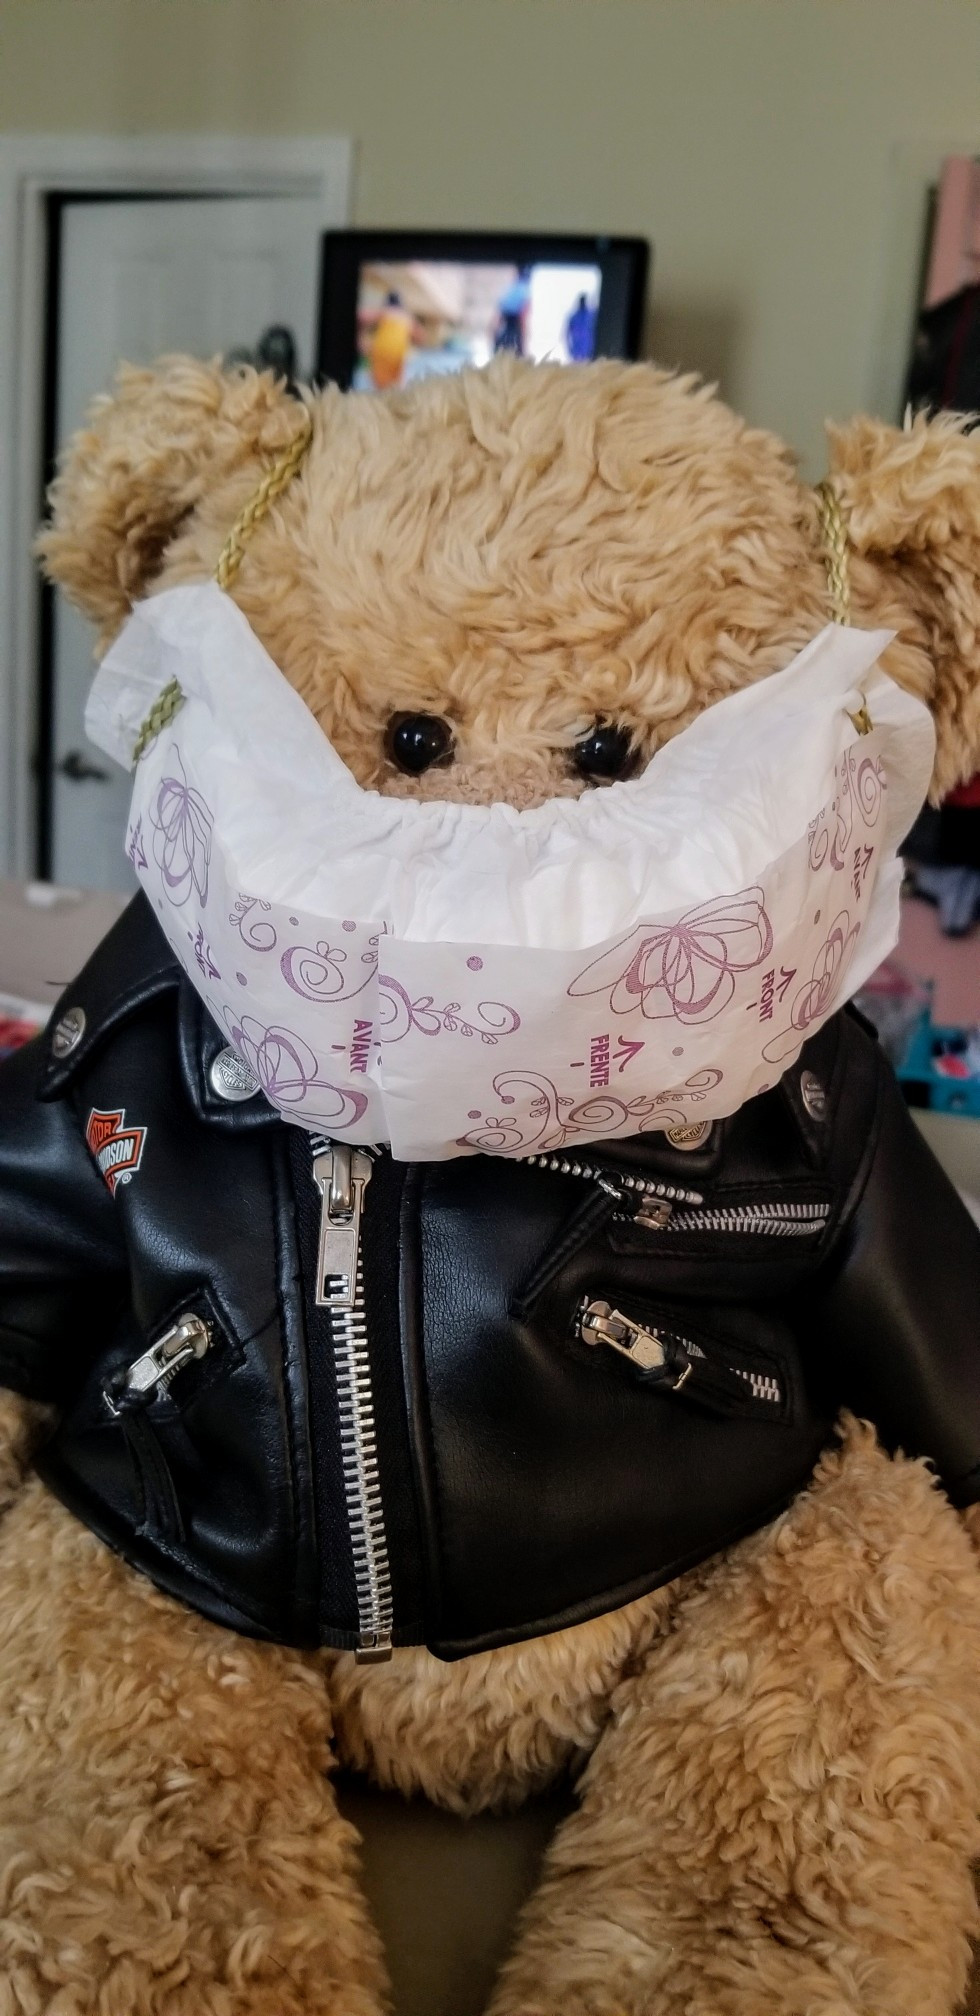 """Either from boredom or ingenuity, my mother devised a """"mask"""" from a Poise pantyliner and strapped it to MY teddybear...."""